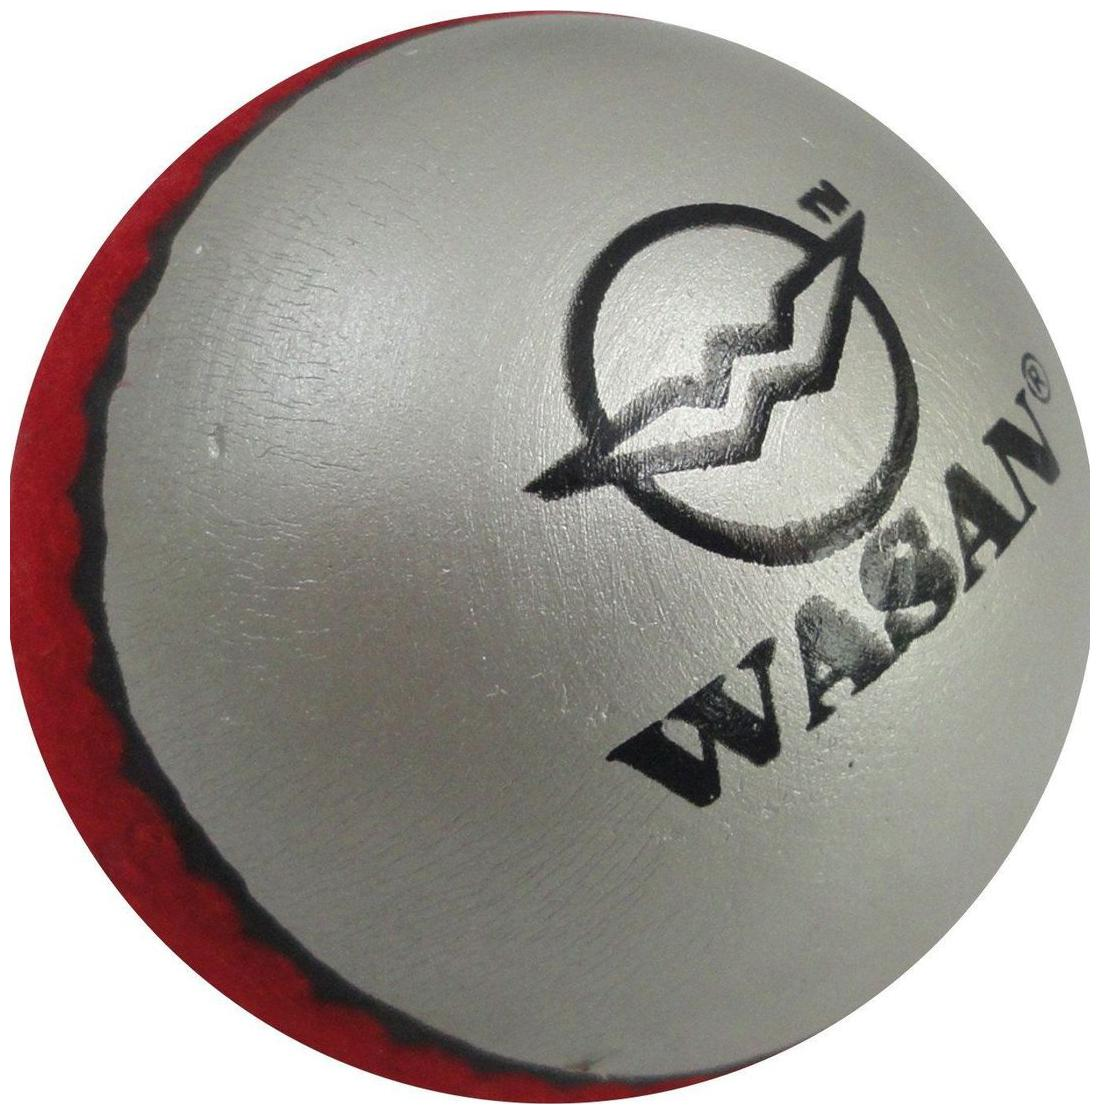 Wasan 2 Tone Tennis Cricket Ball   For All ages by Wasan Exports